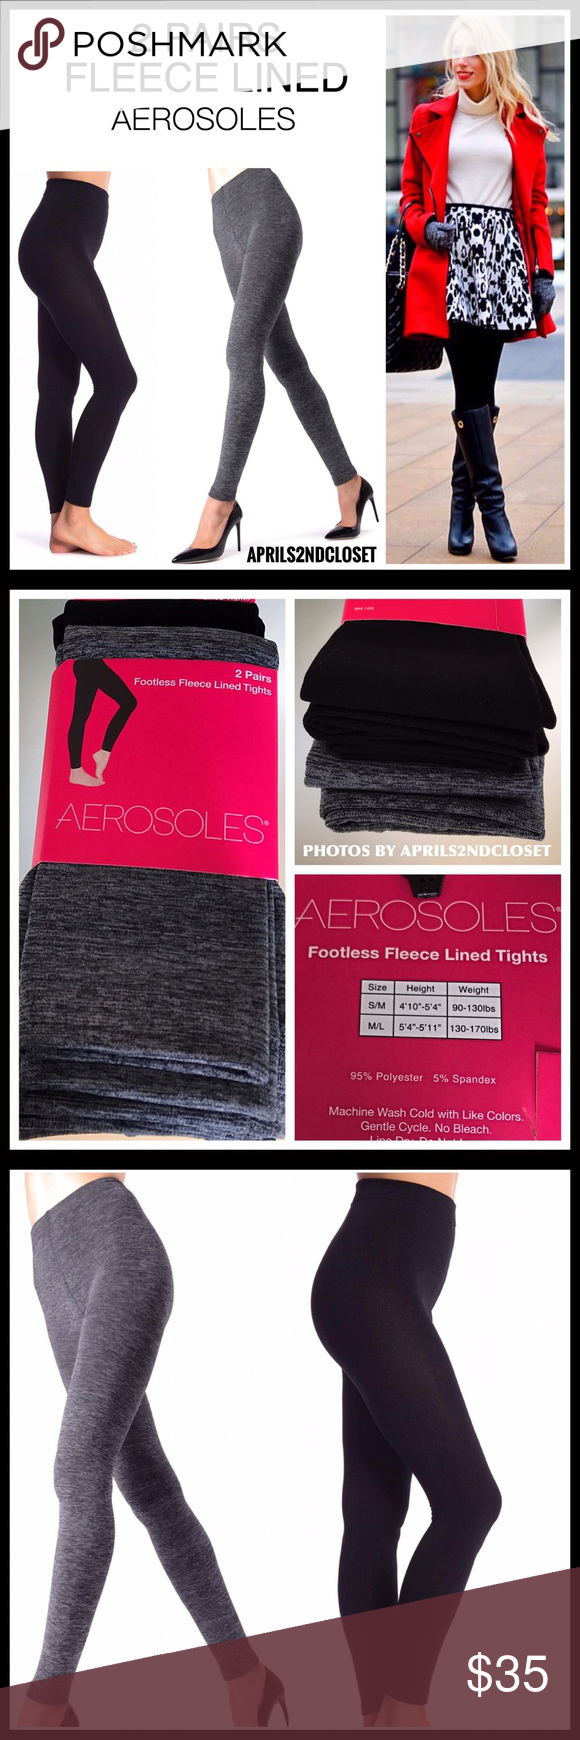 860f4c08e2202a 2 PAIRS FLEECE FOOTLESS LEGGING TIGHTS 2 PAIRS FLEECE LINED FOOTLESS TIGHTS  - LEGGINGS BRAND- AEROSOLES COLOR- Black, Marled Charcoal Grey SIZING S/M  ...